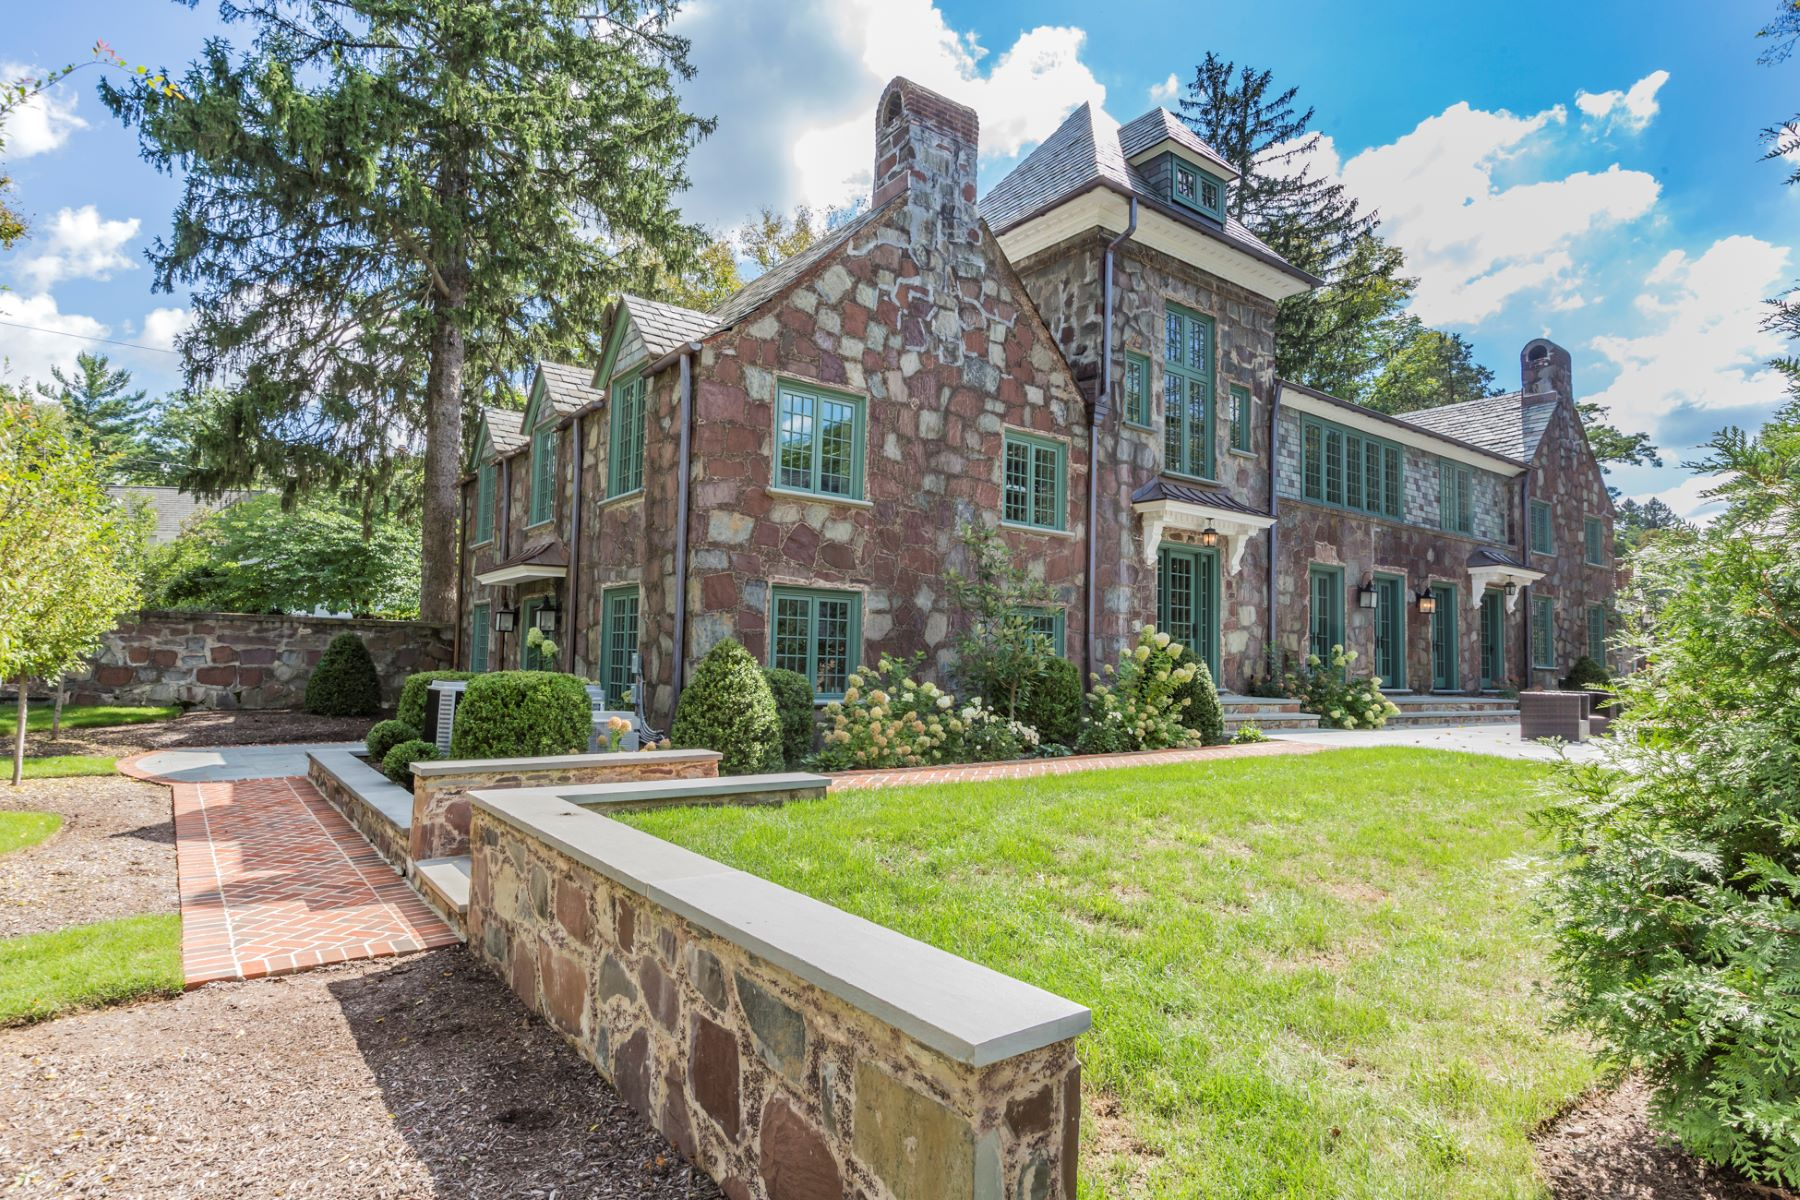 Property for Sale at A Distinctly Modern Sensibility for Legacy Home 75 Cleveland Lane, Princeton, New Jersey 08540 United States